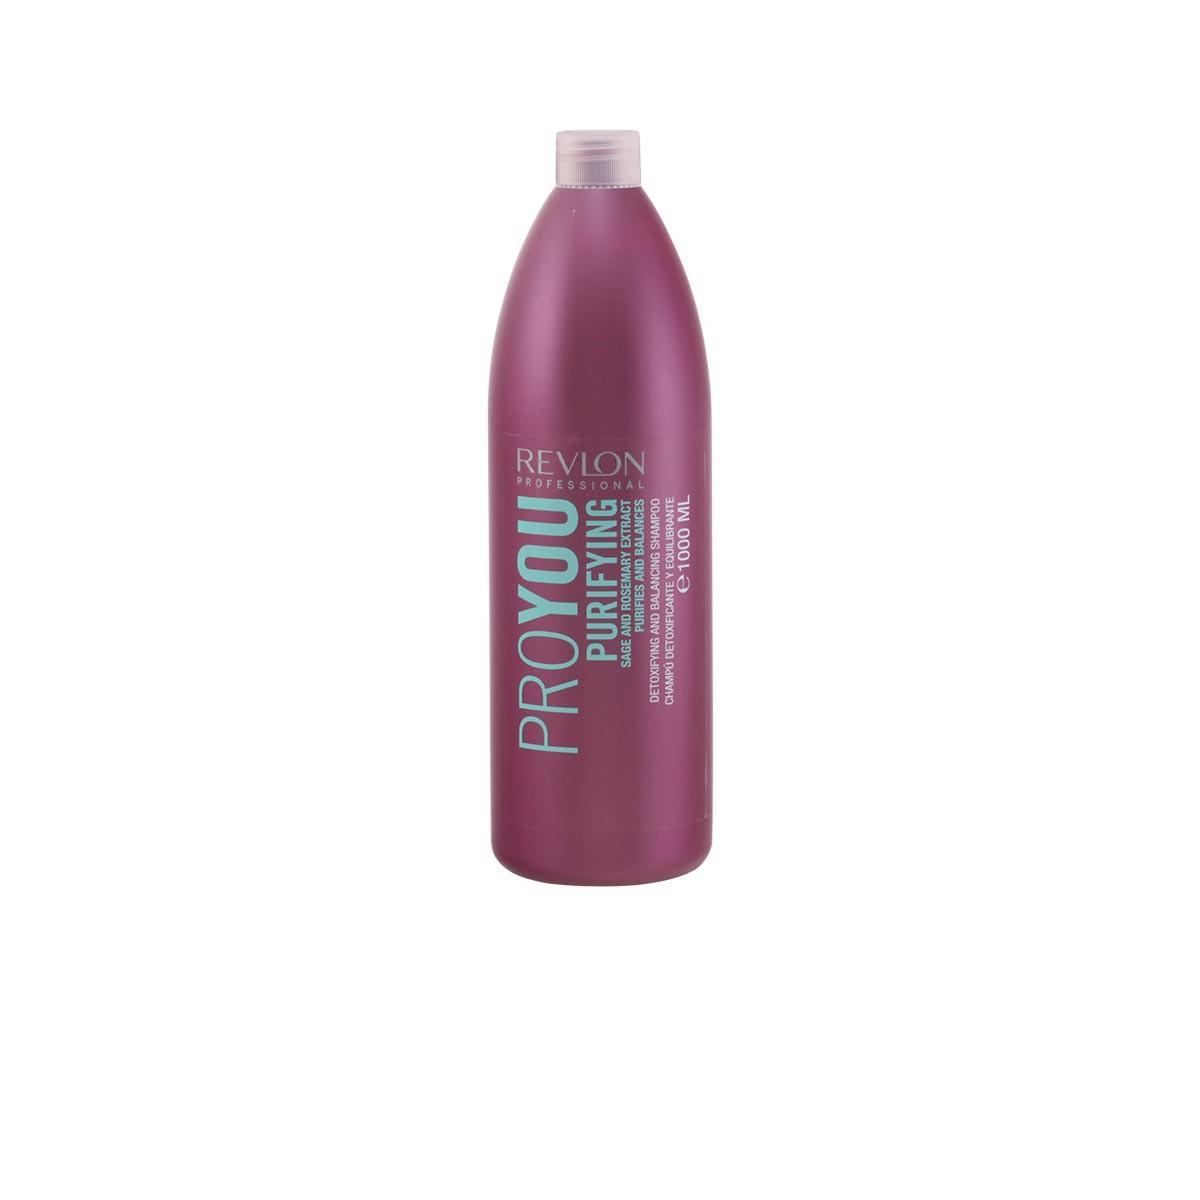 Revlon fragrances Pro You Shampoo Purifying 1000ml